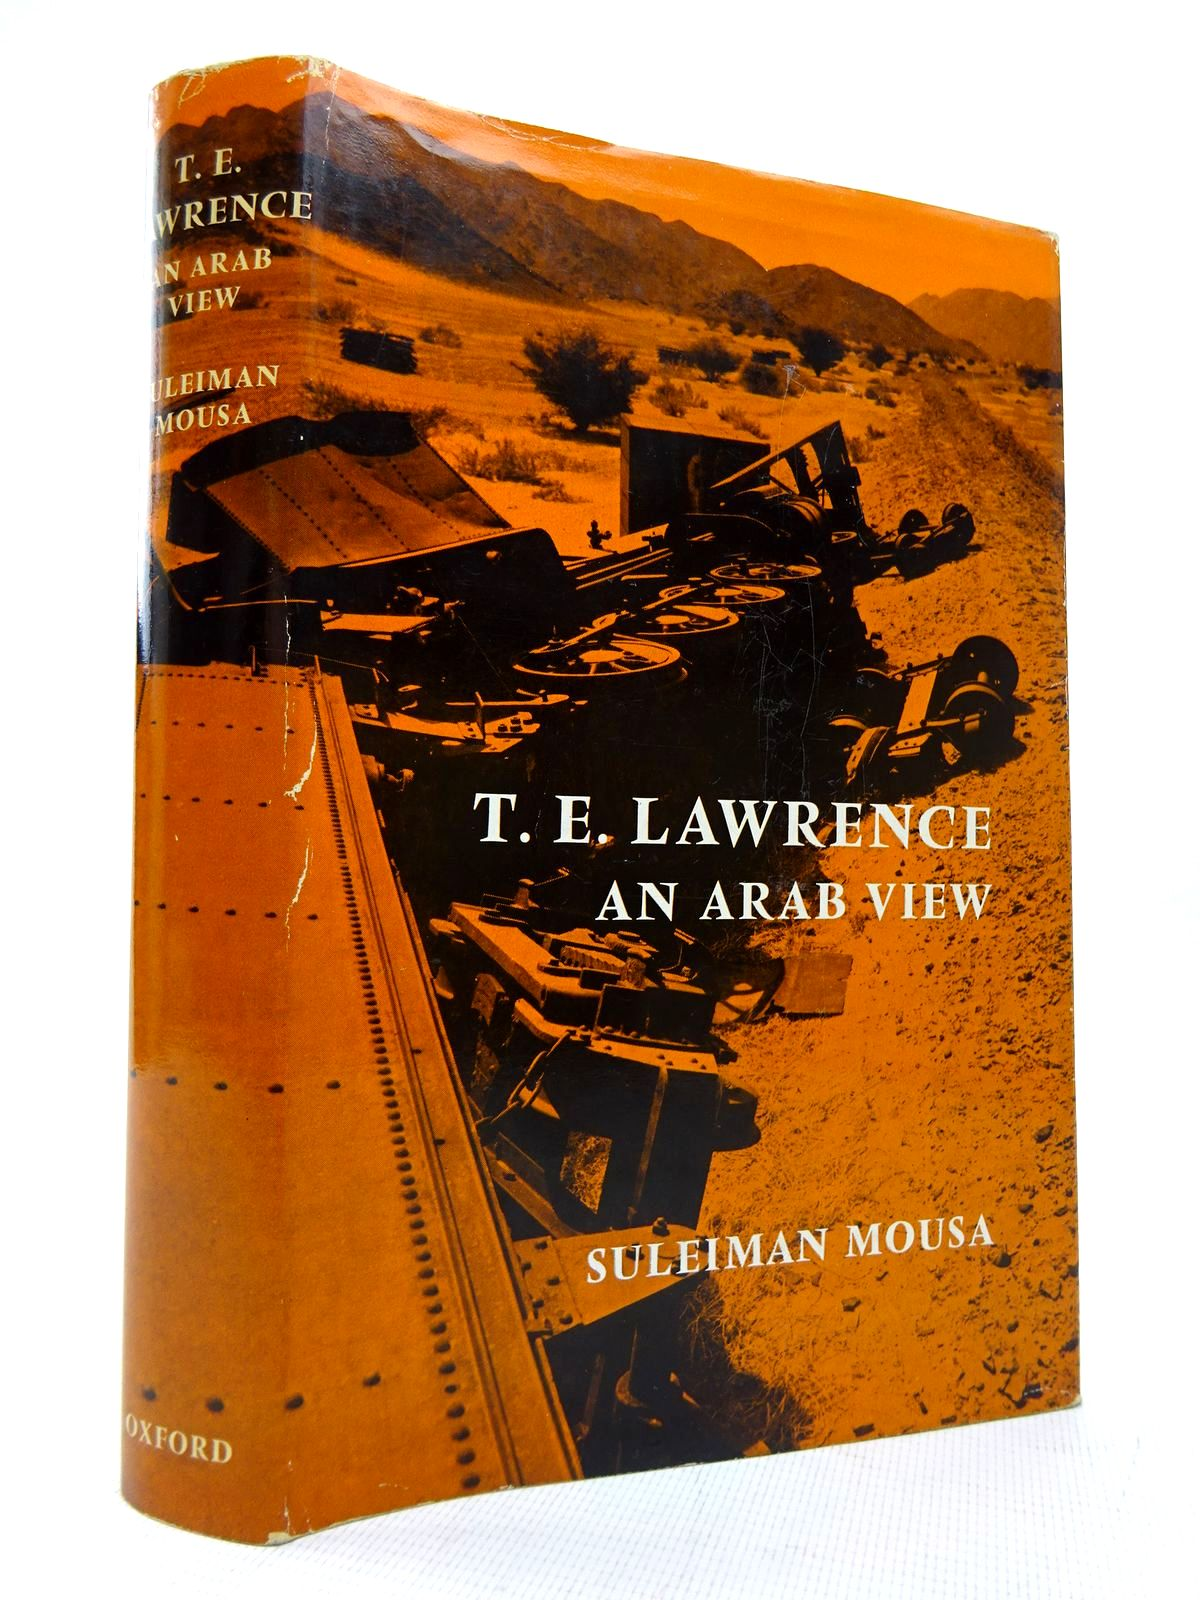 Photo of T.E. LAWRENCE AN ARAB VIEW written by Mousa, Suleiman published by Oxford University Press (STOCK CODE: 1816386)  for sale by Stella & Rose's Books